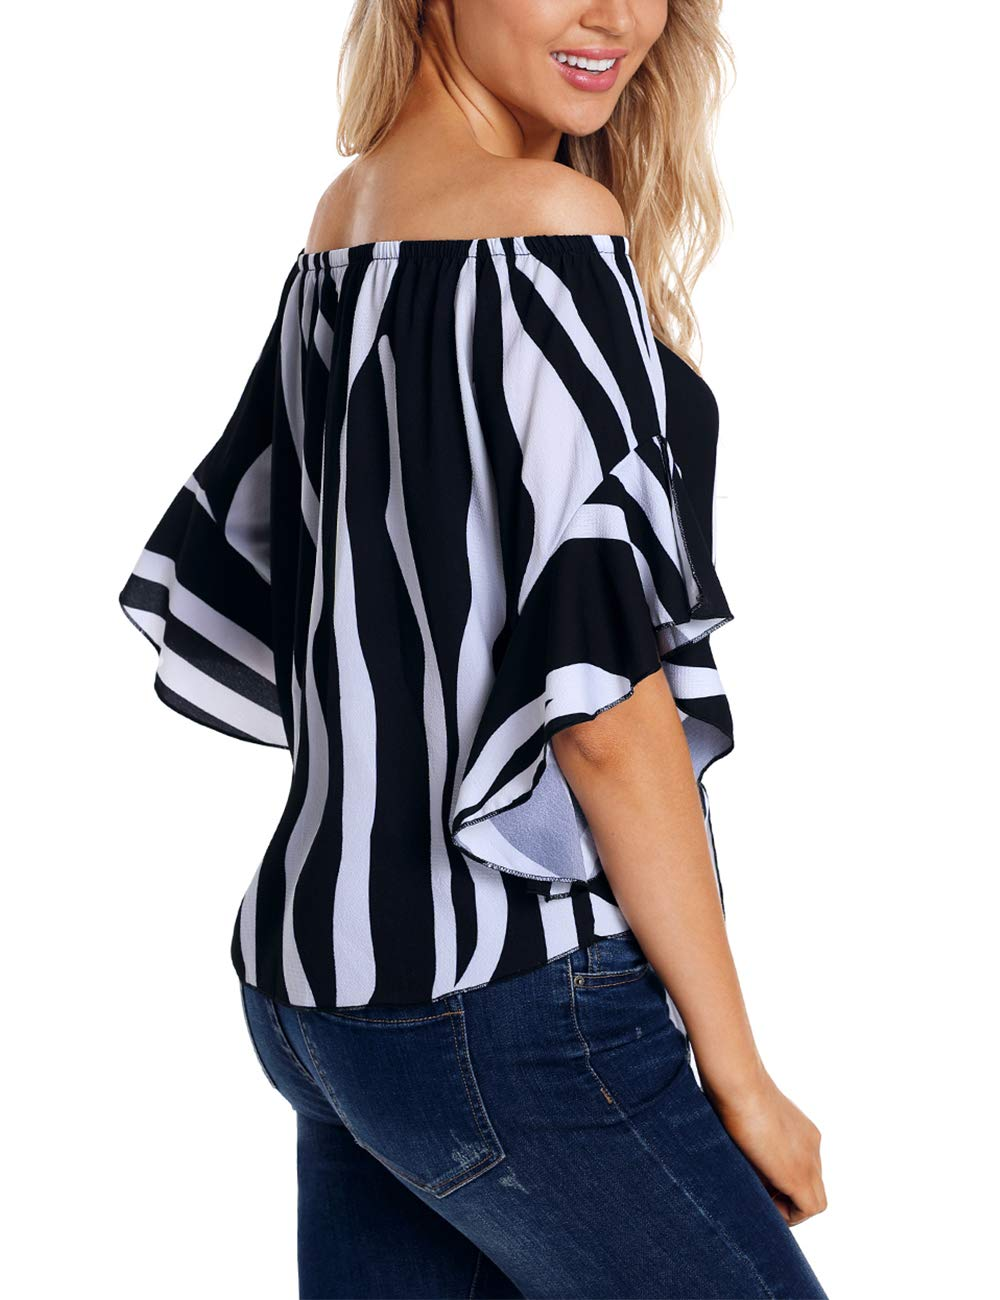 RSM &CHENG Women's Striped Off Shoulder Bell Sleeve Shirt Tie Knot Casual Blouses Tops(Stripe Black,L)